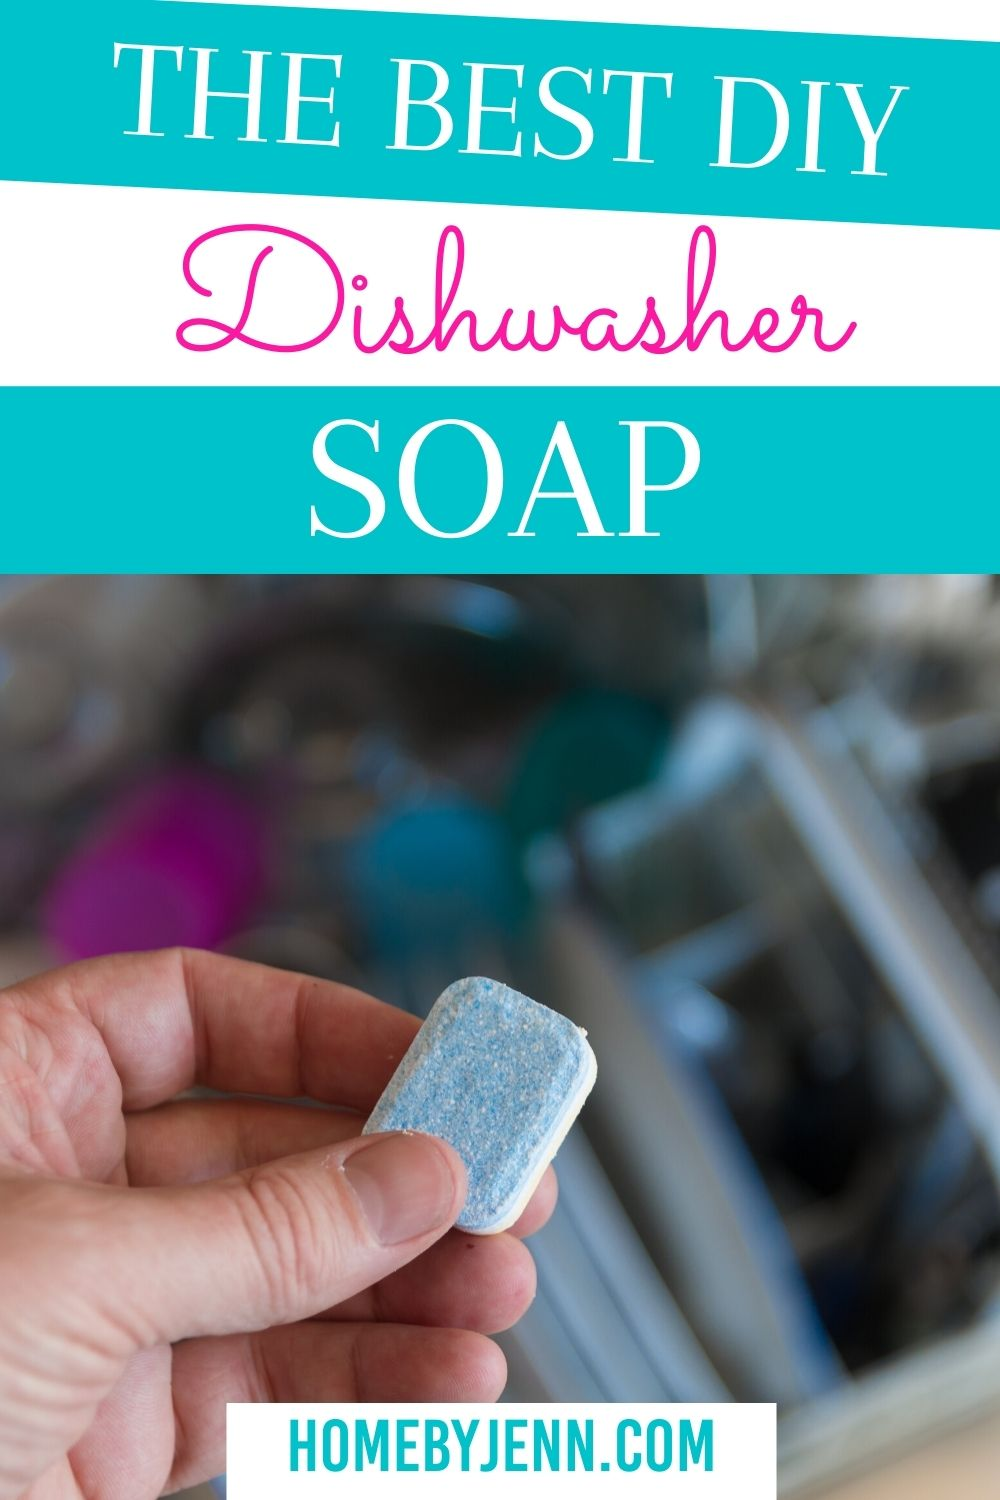 The Best DIY Dishwasher Soap. You may have used other homemade dishwasher soap in the past that just didn't work well. Check out the best homemade dishwasher soap. via @homebyjenn